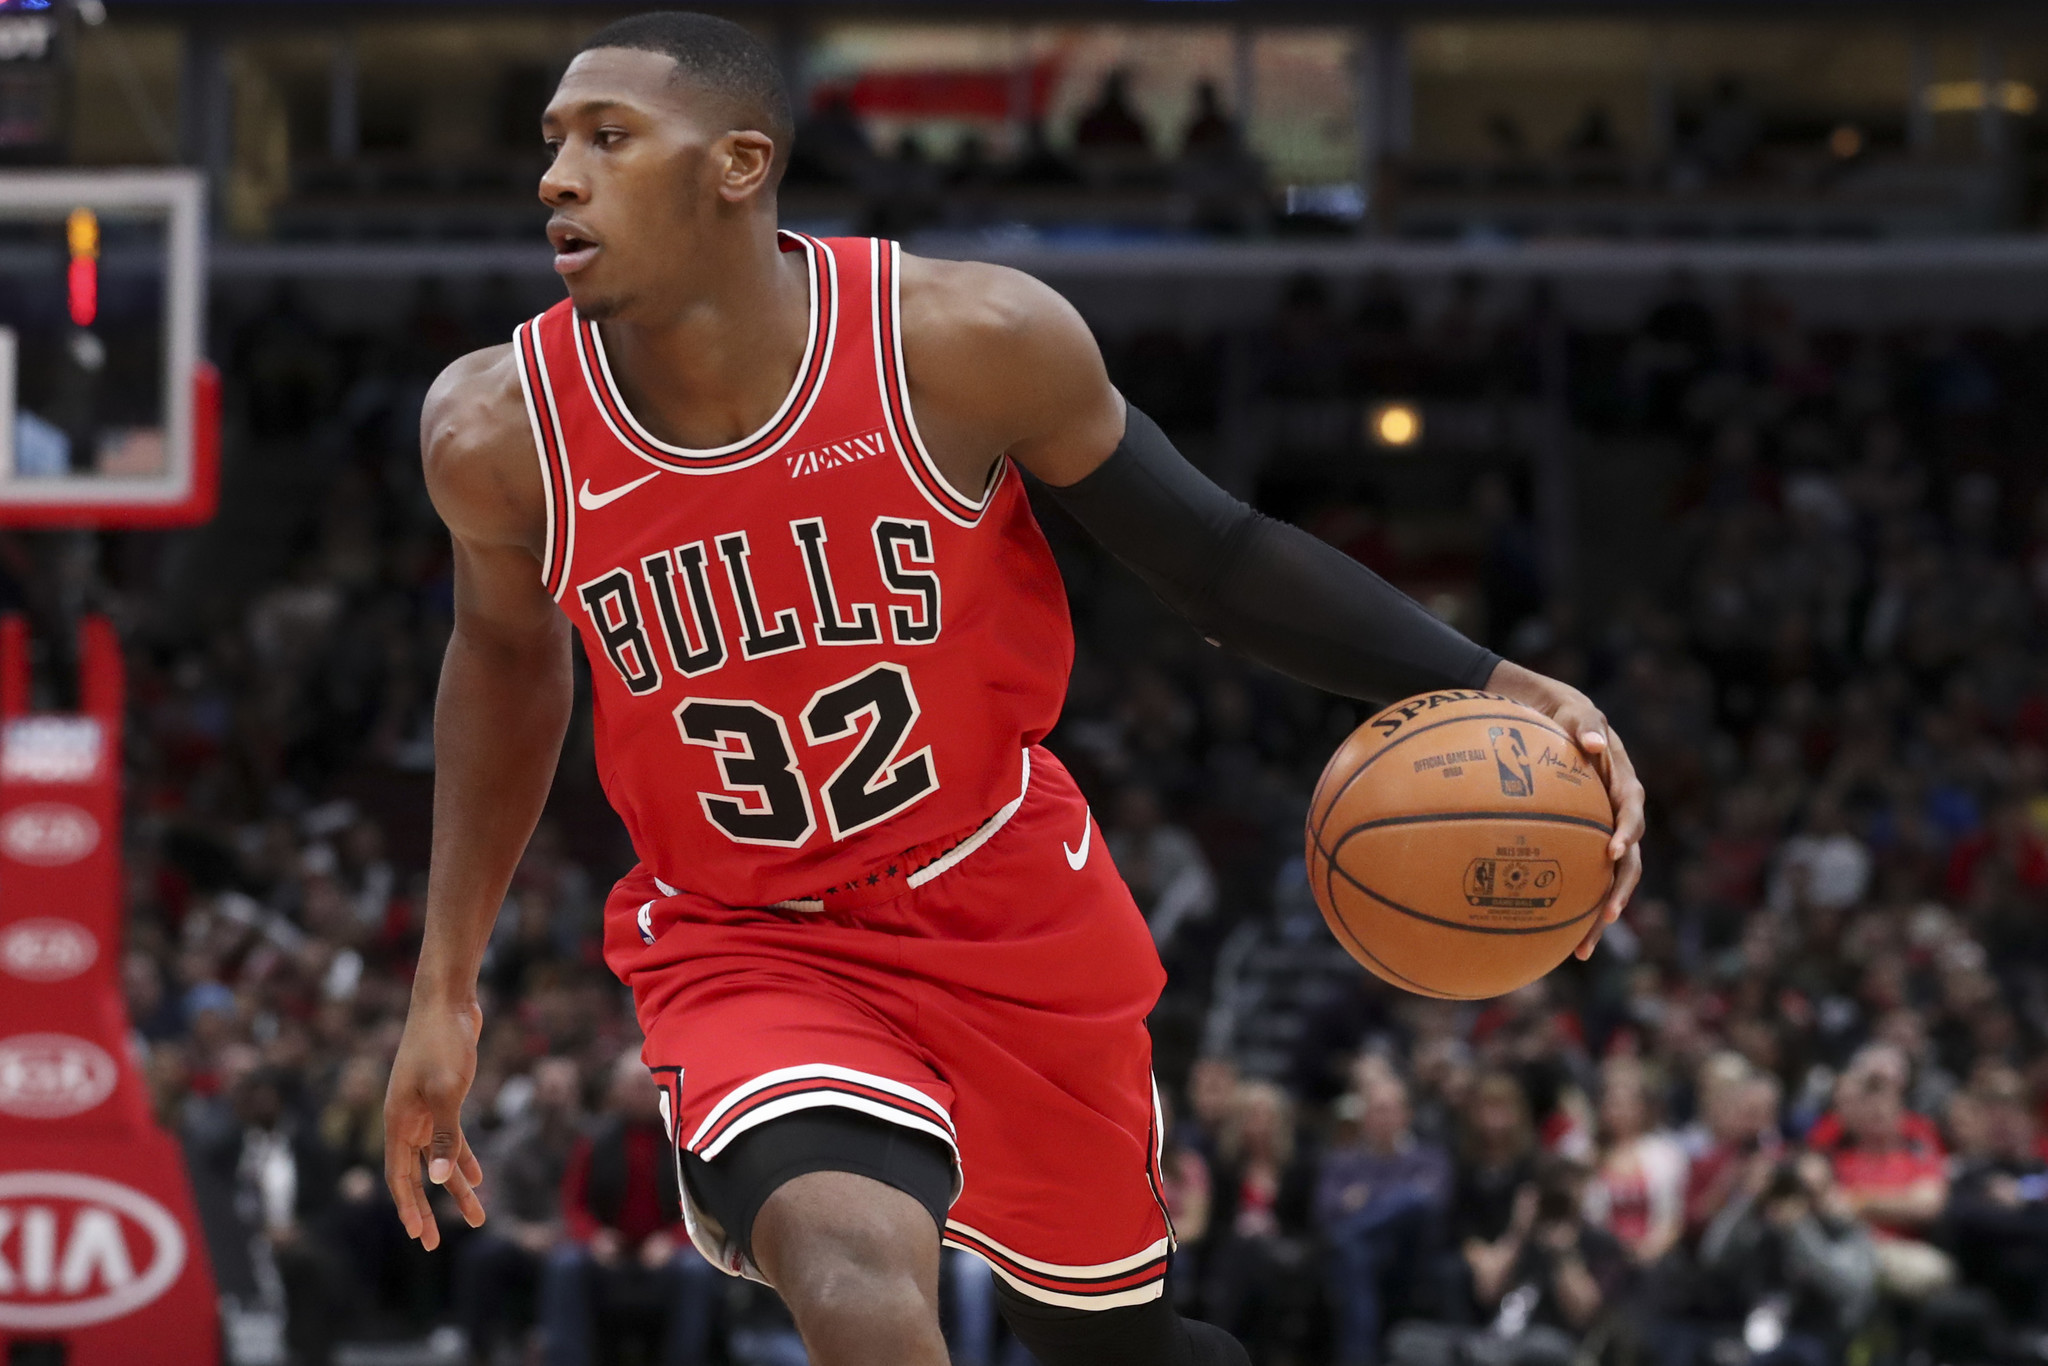 cbf6491ecf2 Bulls Q&A: Is this the worst defensive team in franchise history? Who's on  all-time interview team? - Chicago Tribune